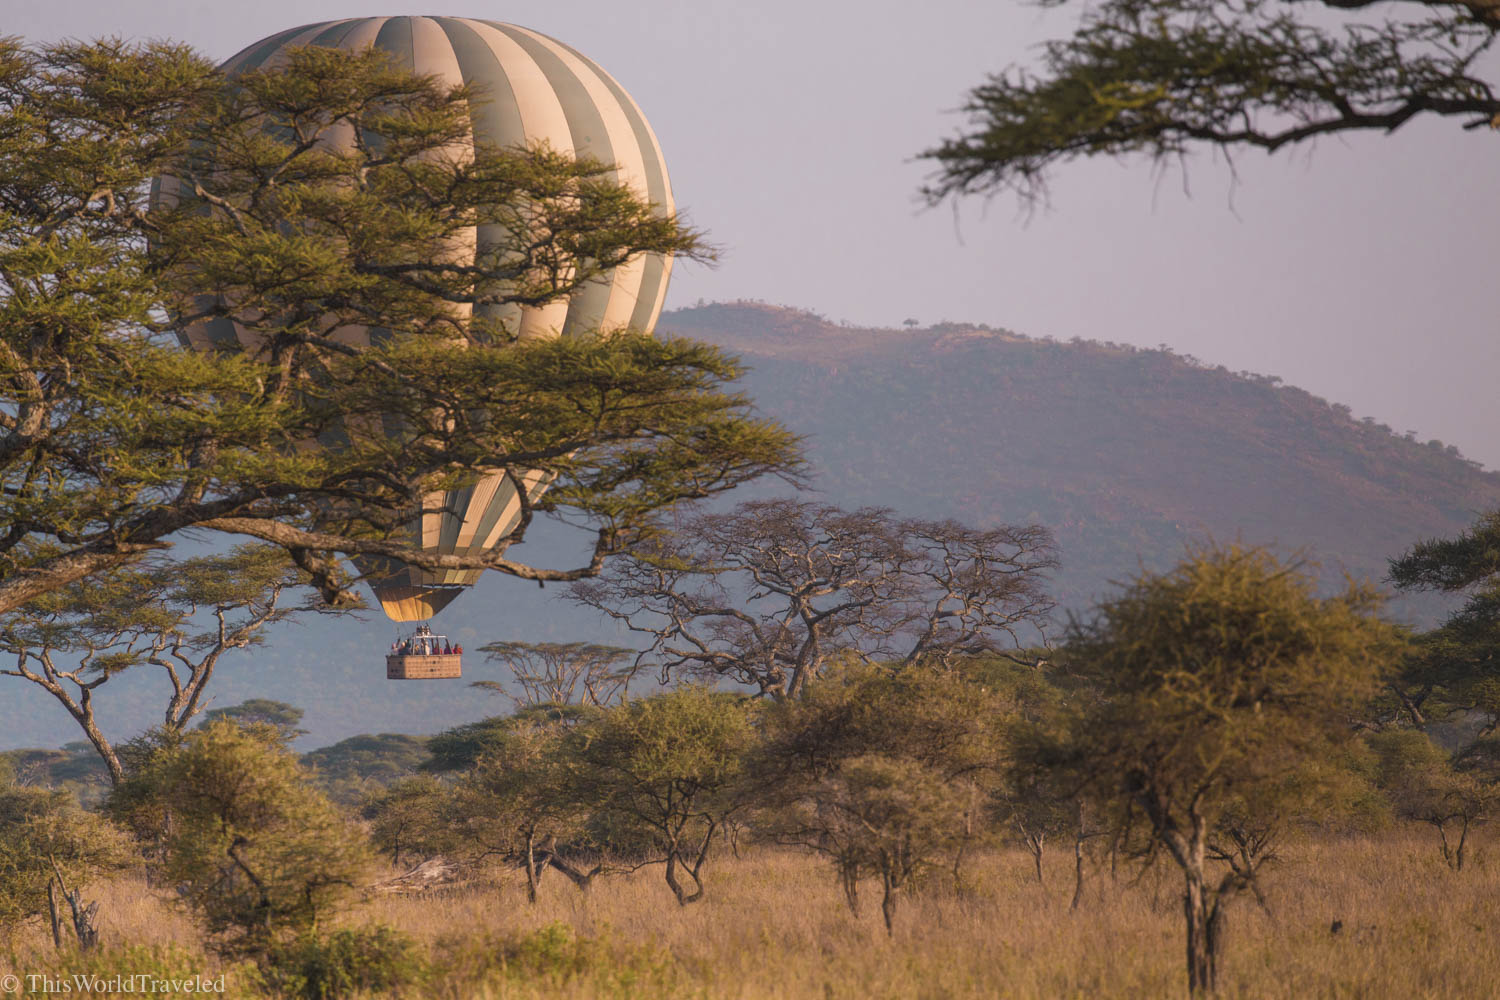 A Hot Air Balloon Safari Over The Serengeti in Tanzania